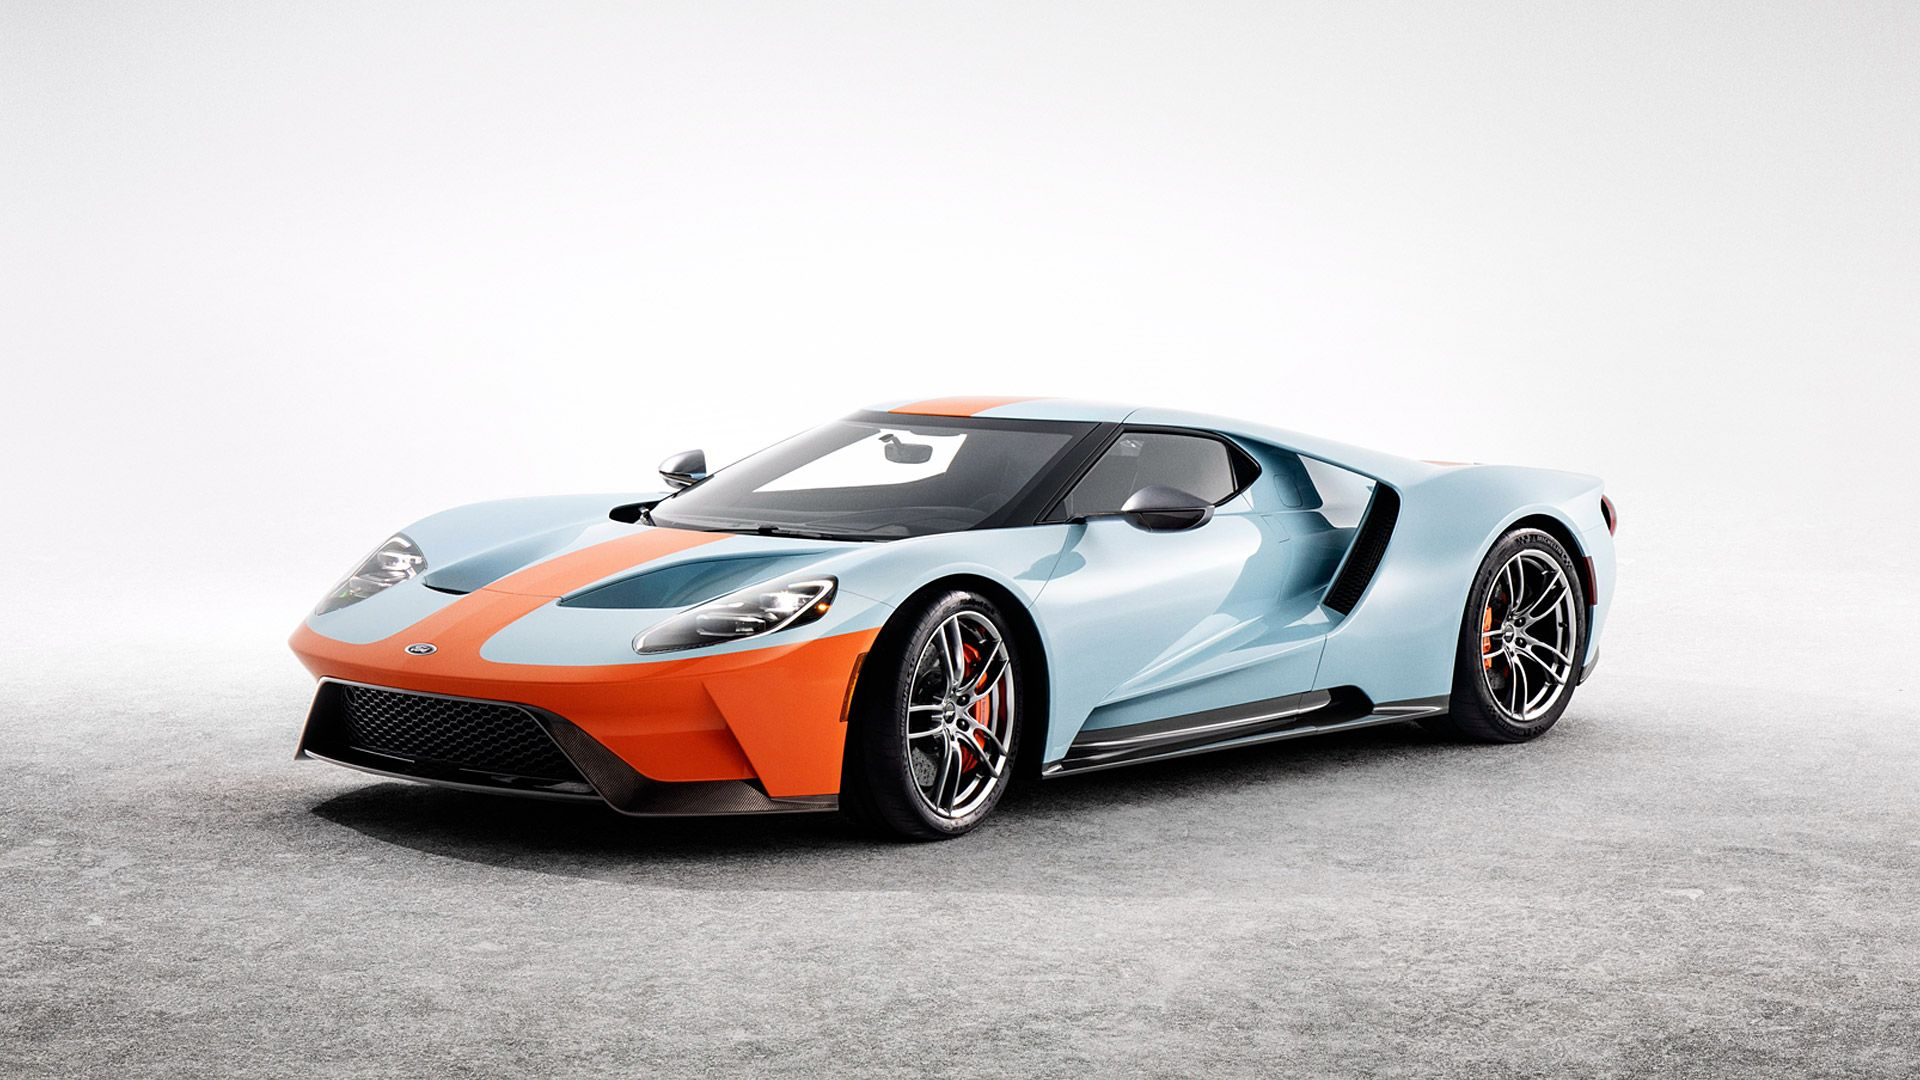 Ford Gt 2019 Wallpaper Wallpapers 2020 With Images Ford Gt